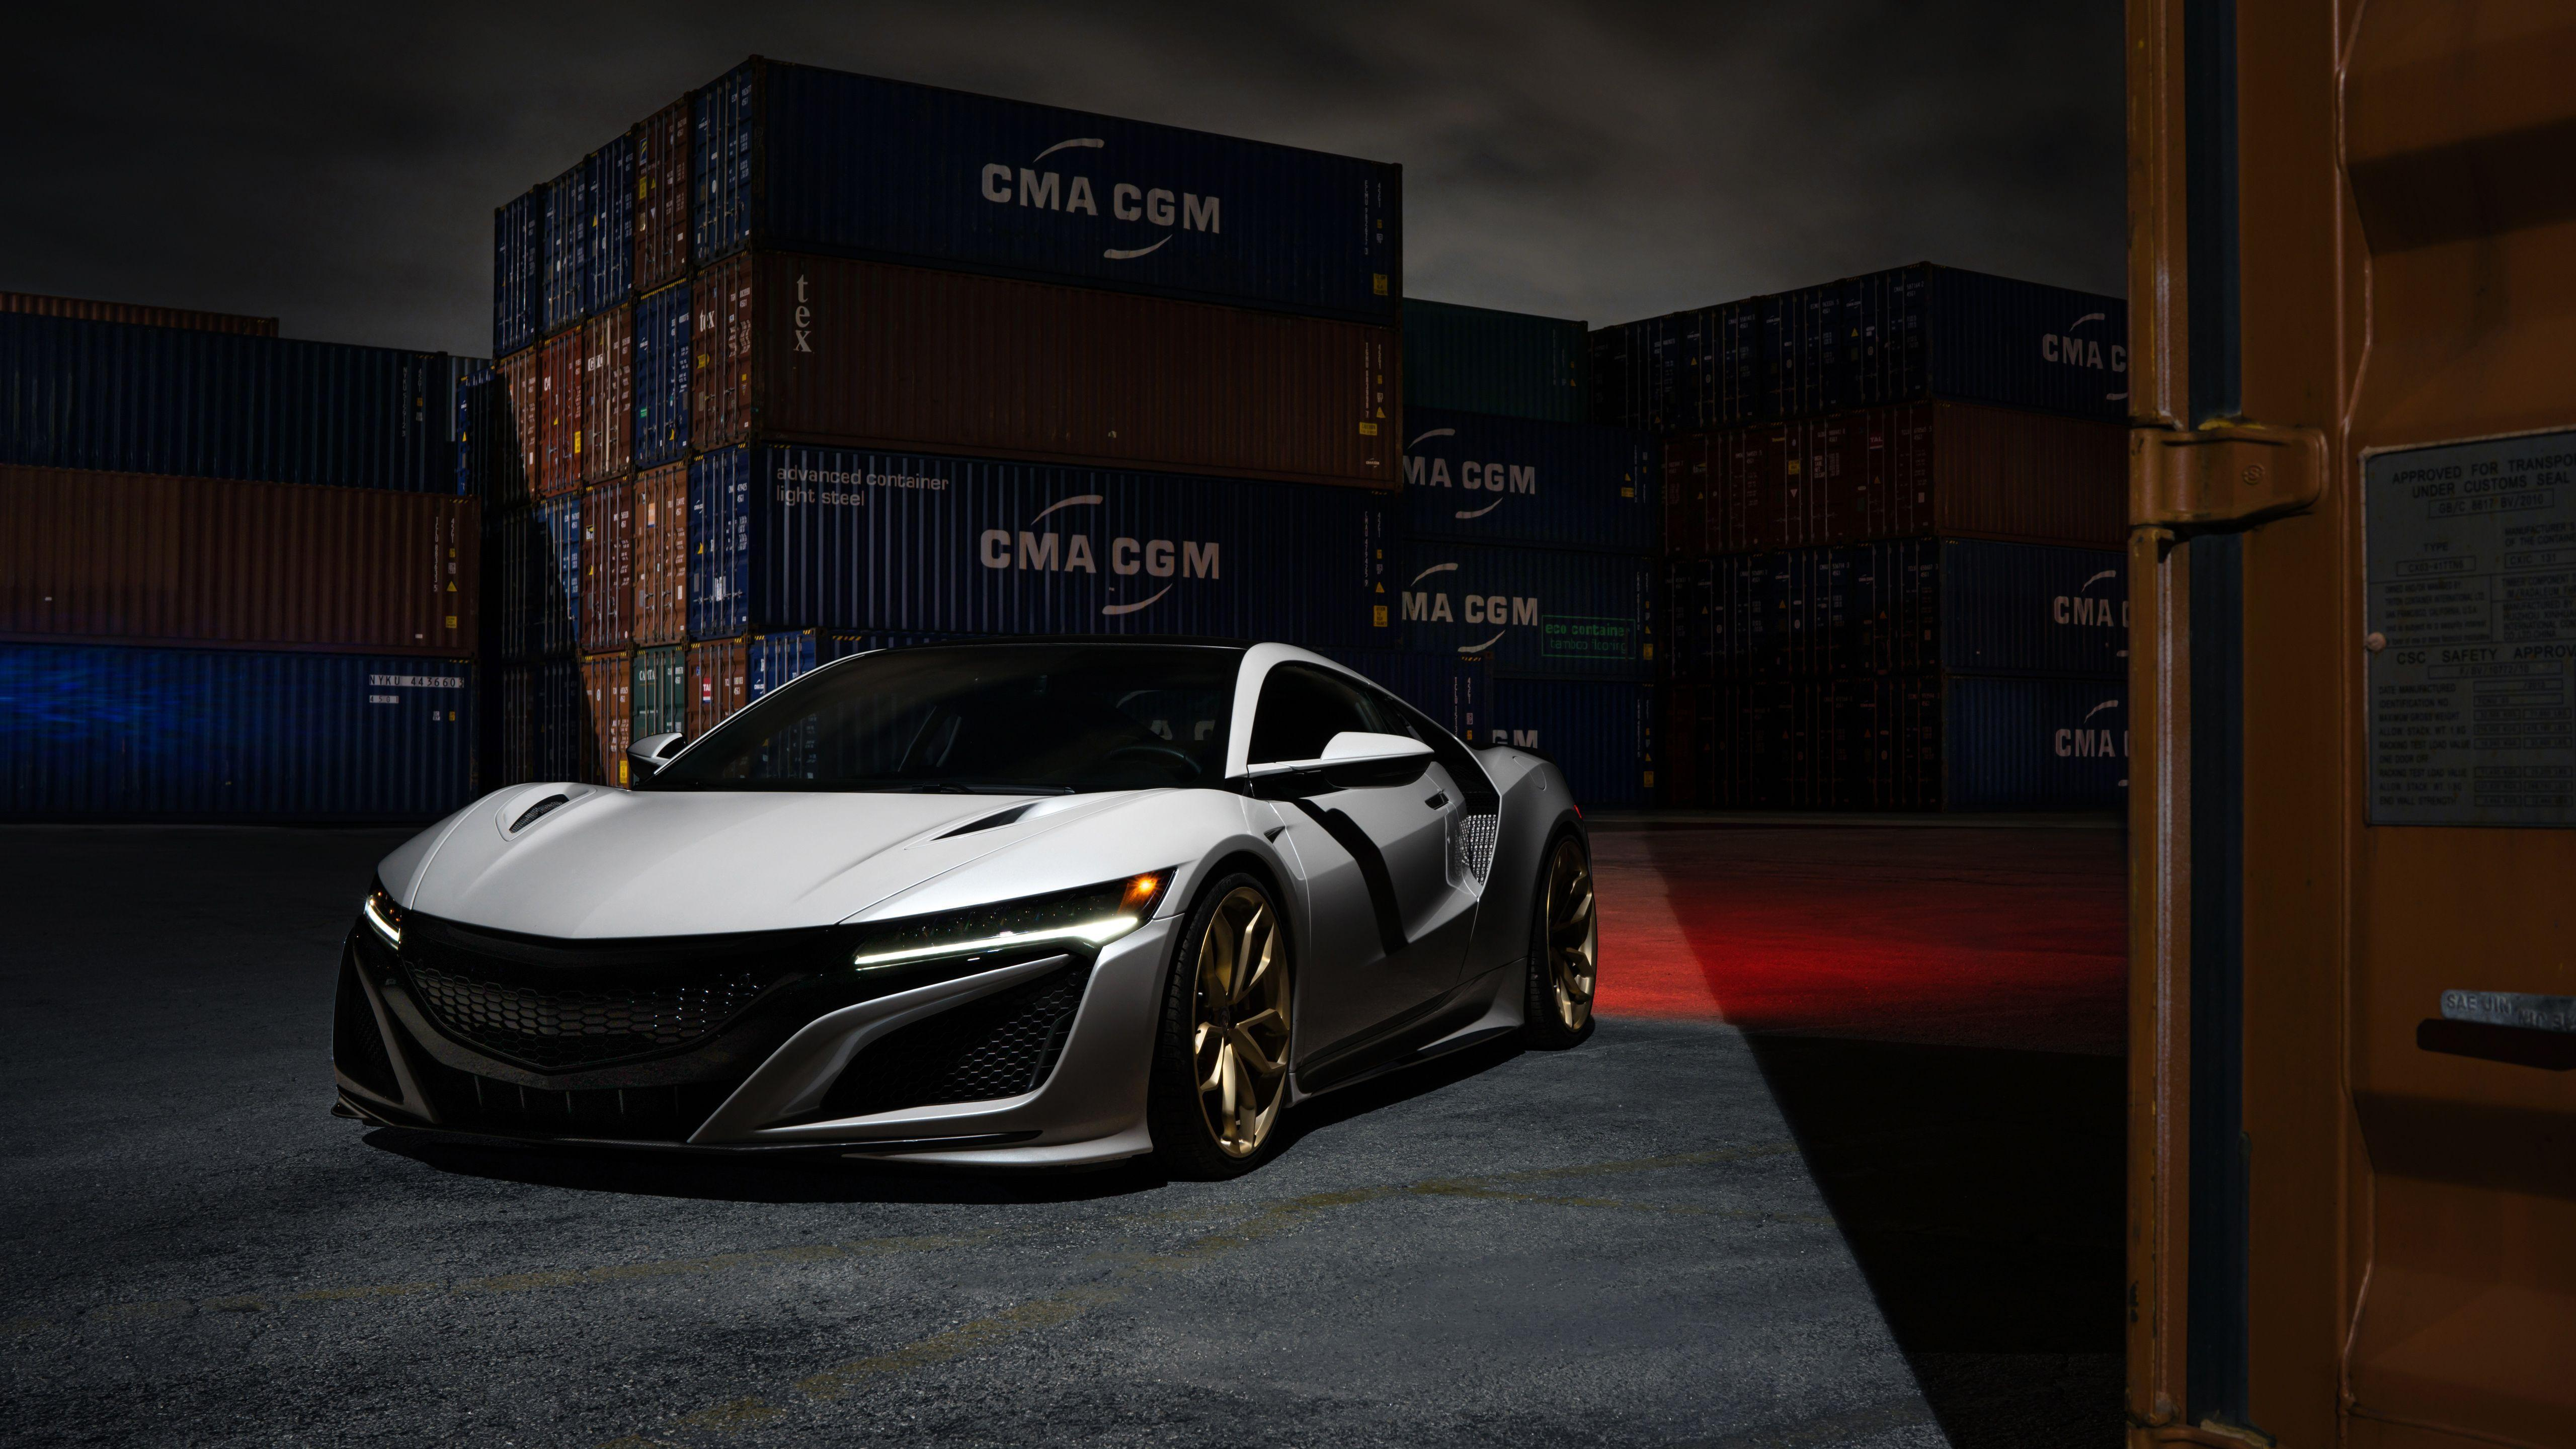 2017 Acura NSX HRE Wheels 5K Wallpapers